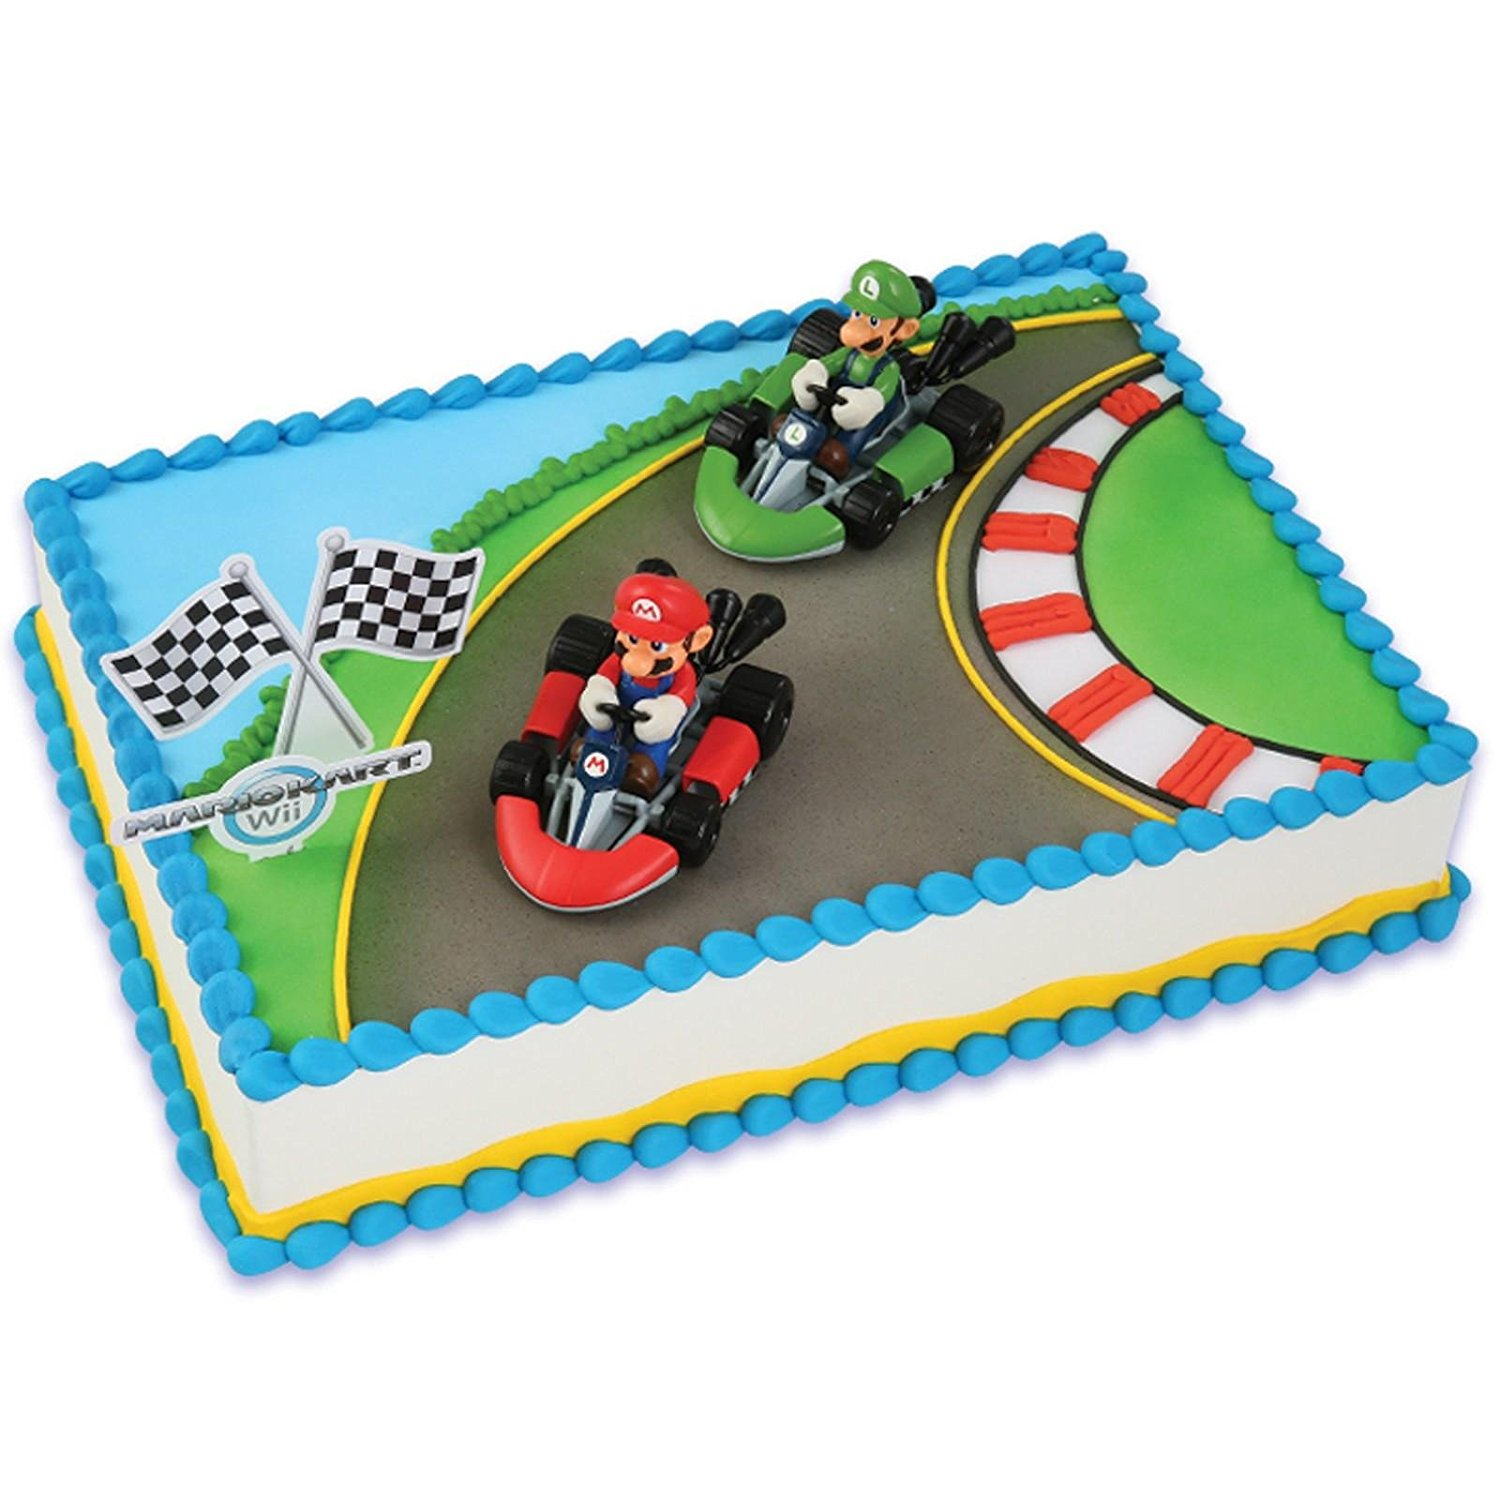 Stupendous Cheap Mario Kart Birthday Cake Find Mario Kart Birthday Cake Personalised Birthday Cards Sponlily Jamesorg